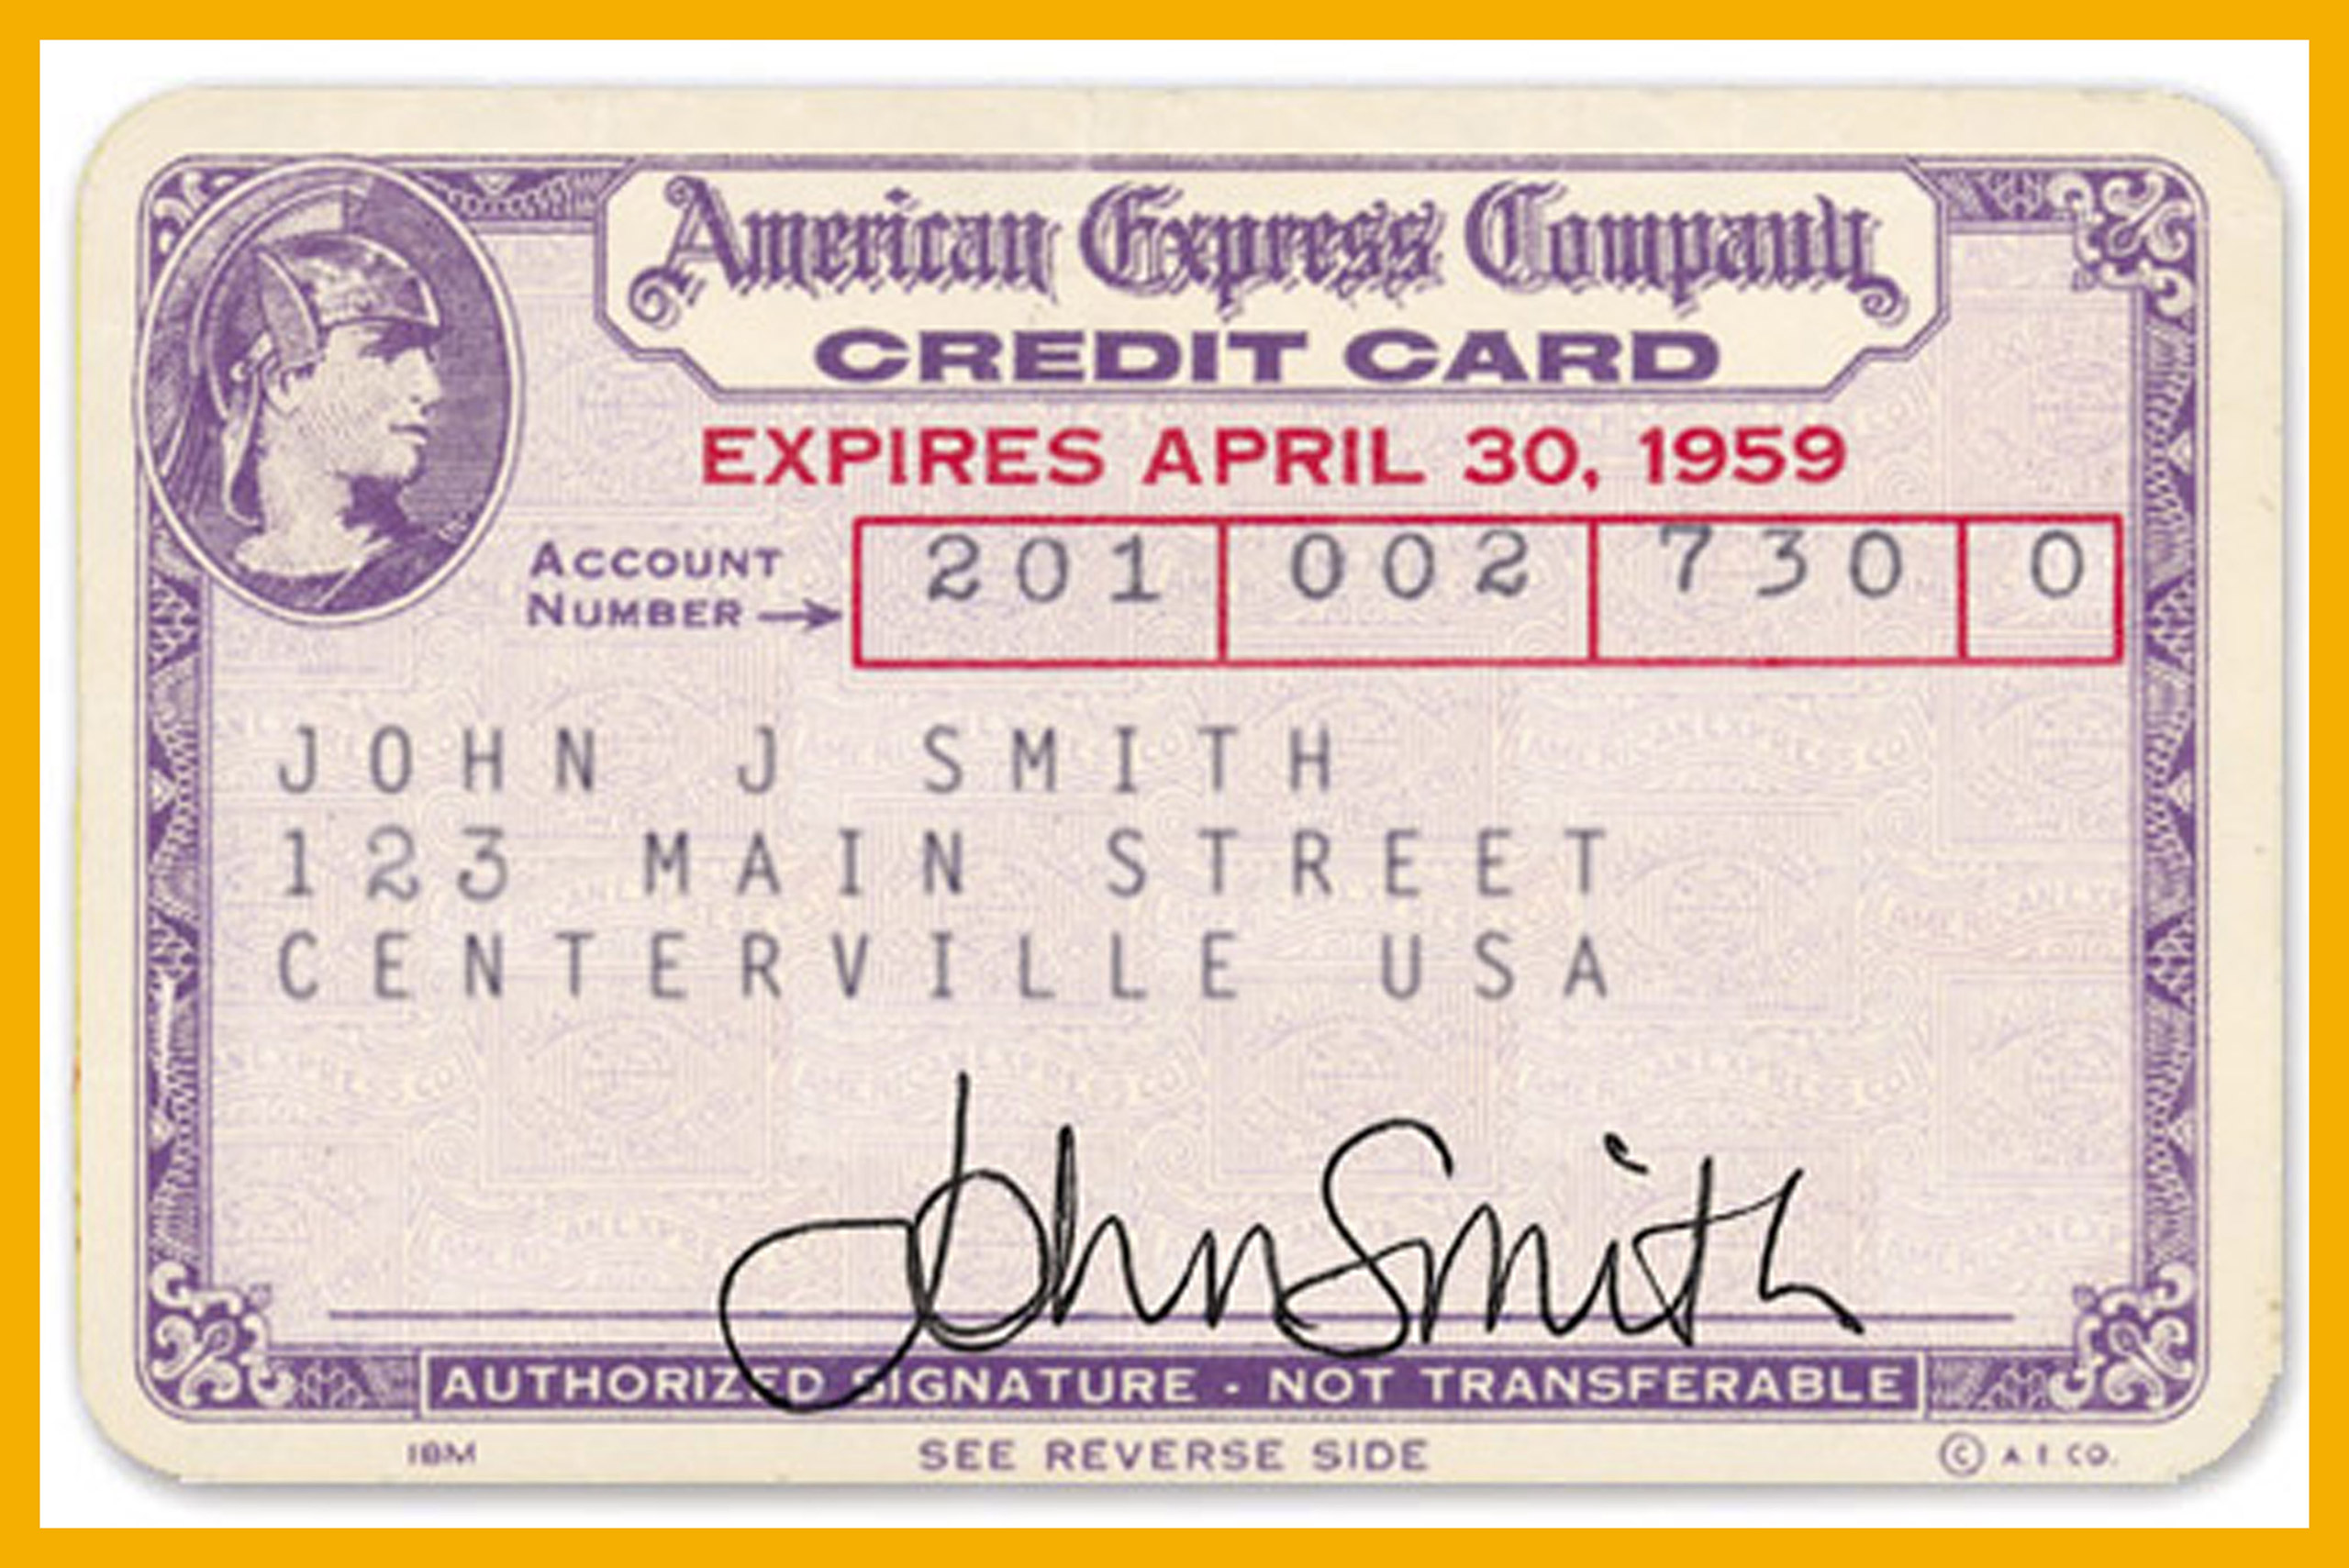 1959 American Express Credit Card.